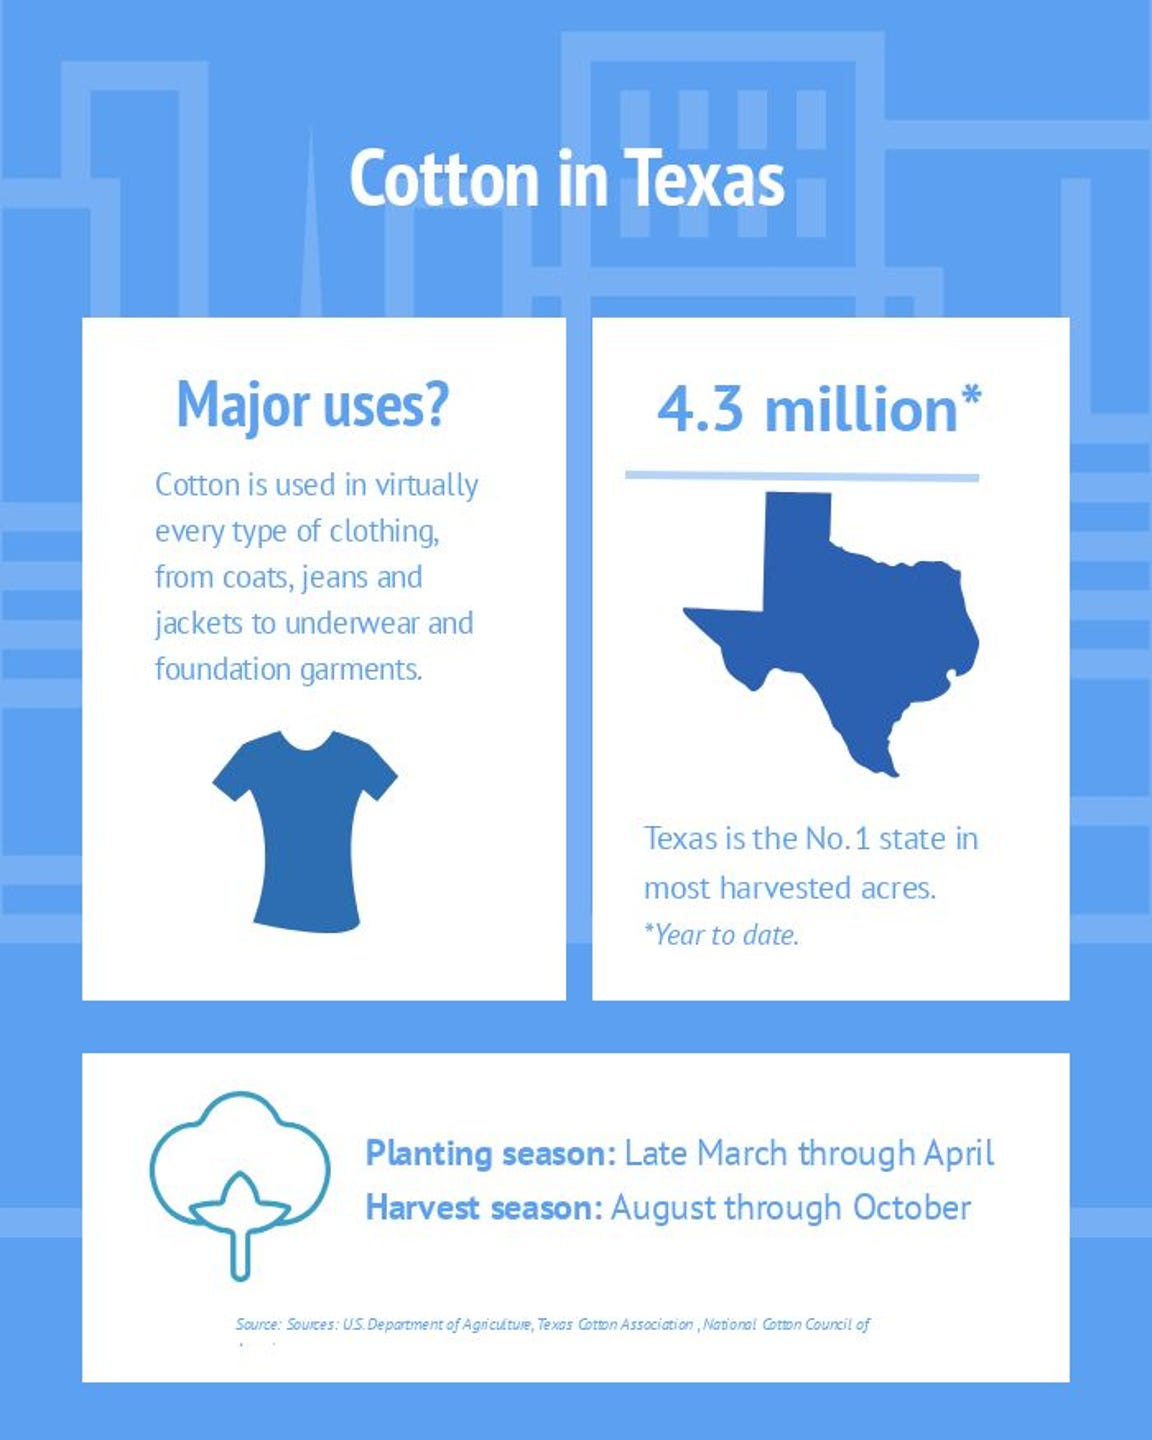 Facts about the cotton industry in Texas